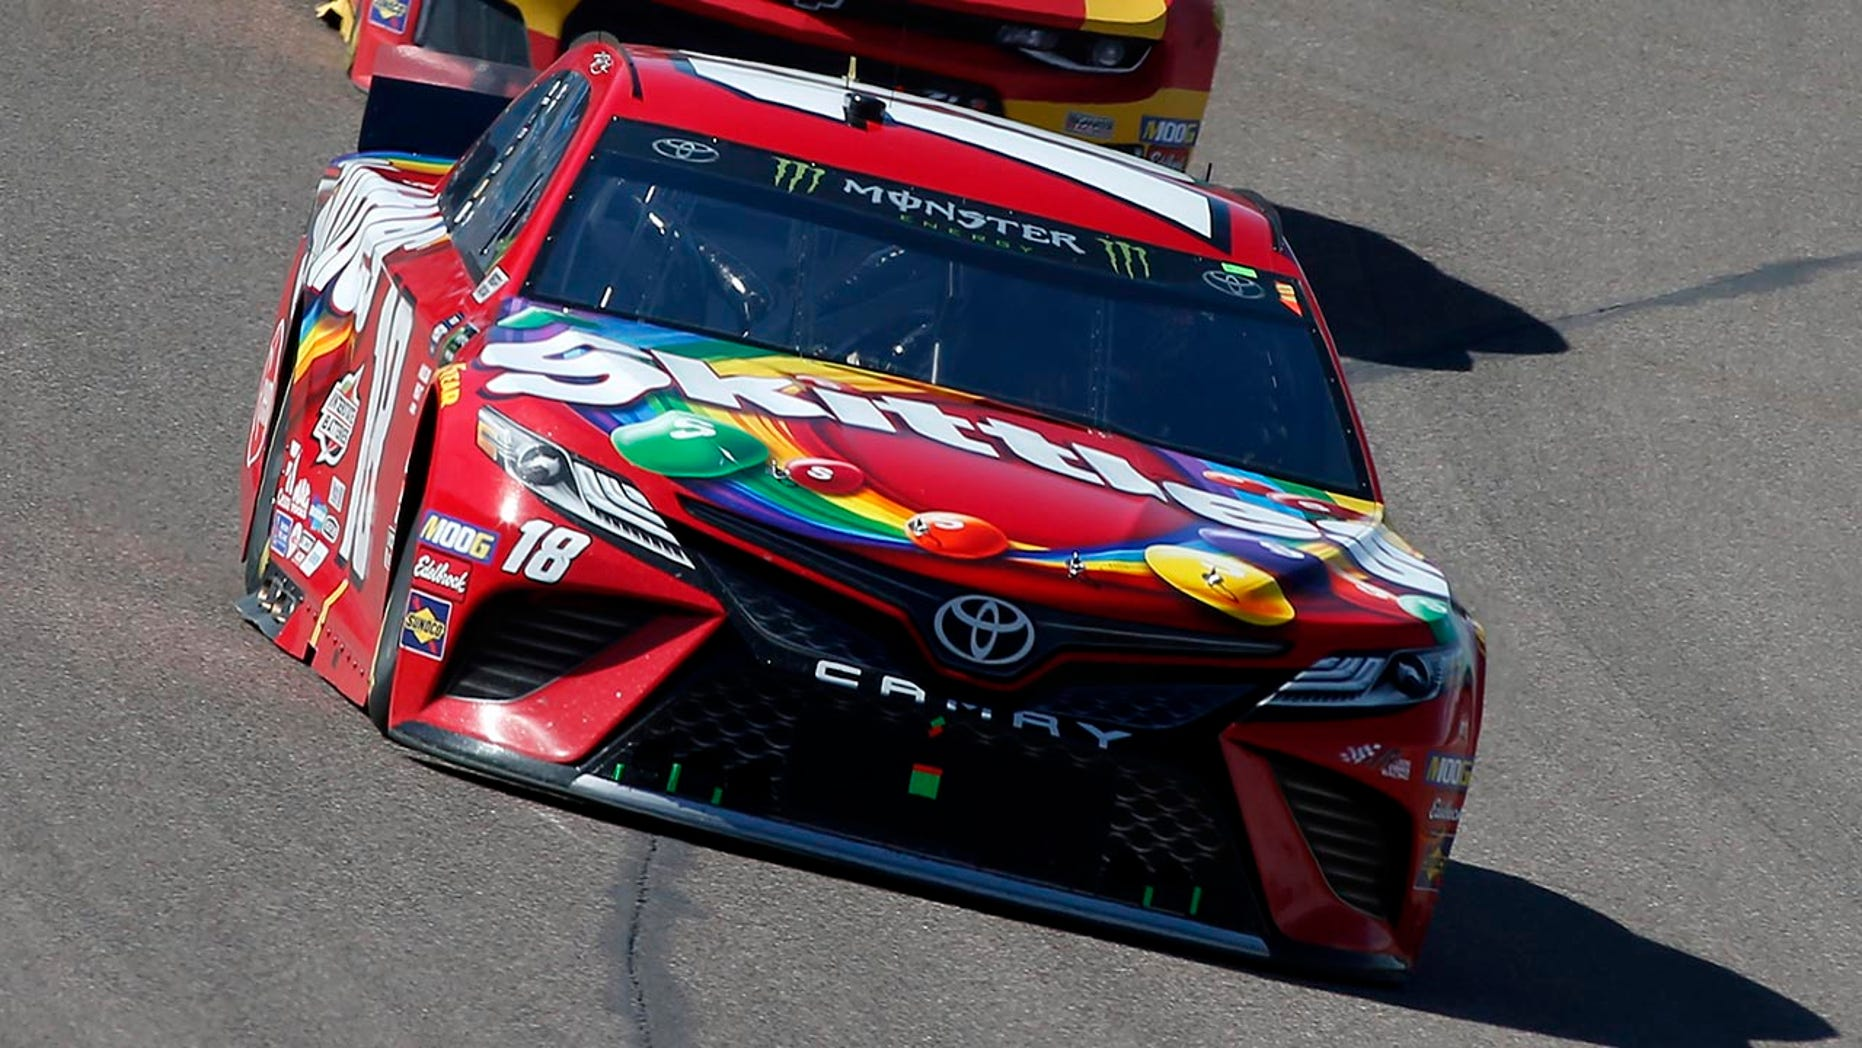 Kyle Busch sweeps Phoenix with Cup Series win